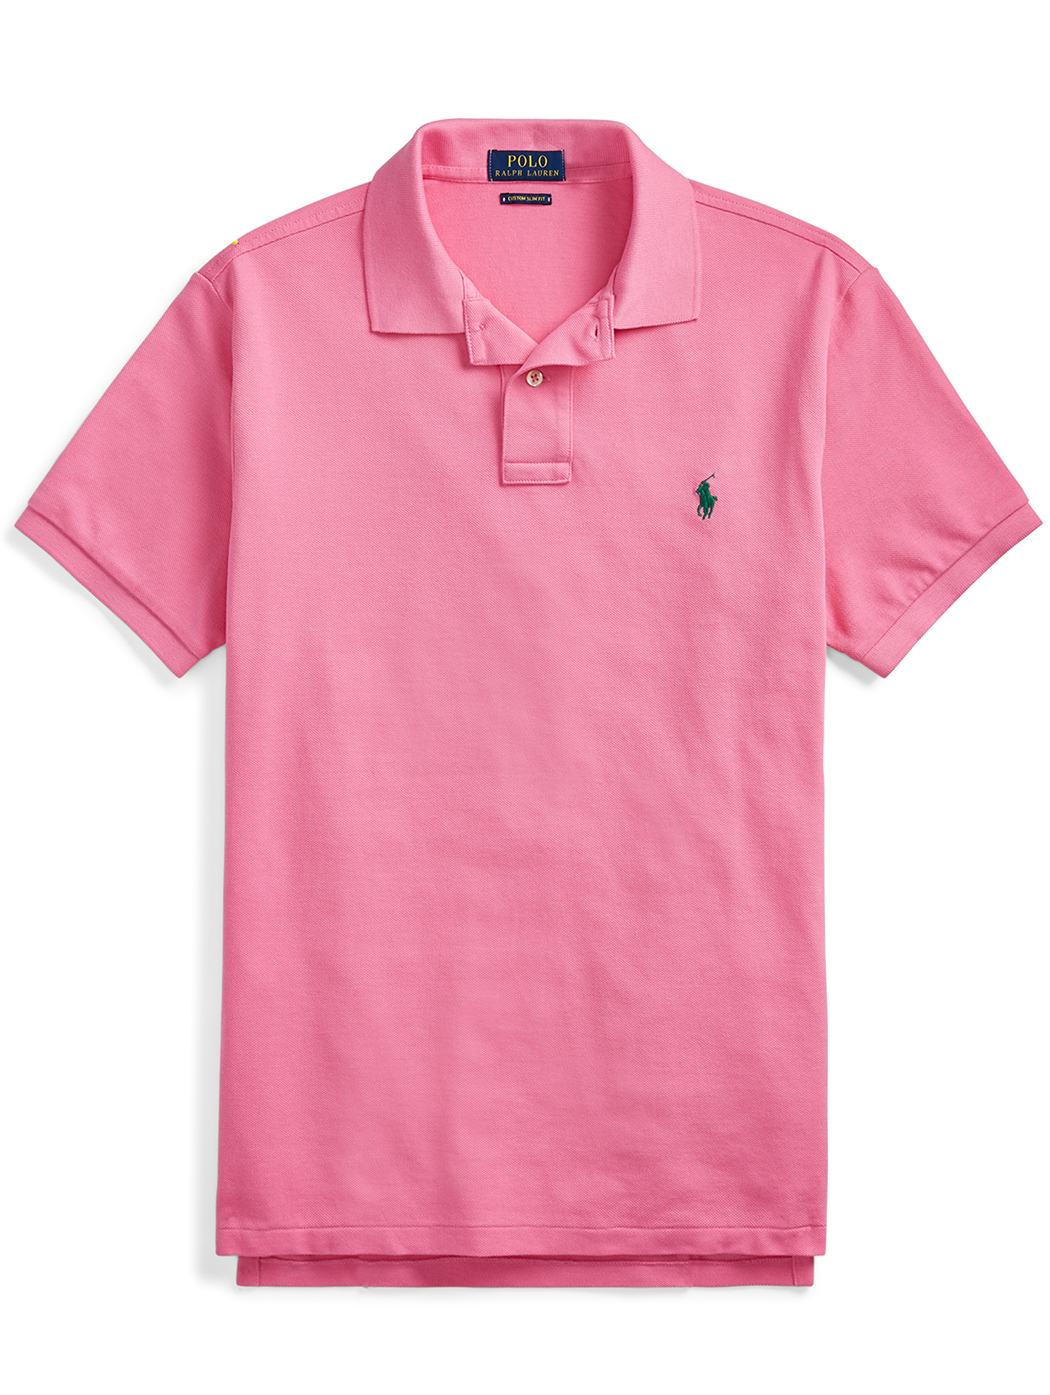 POLO RALPH LAUREN UOMO 71079 032 POLO